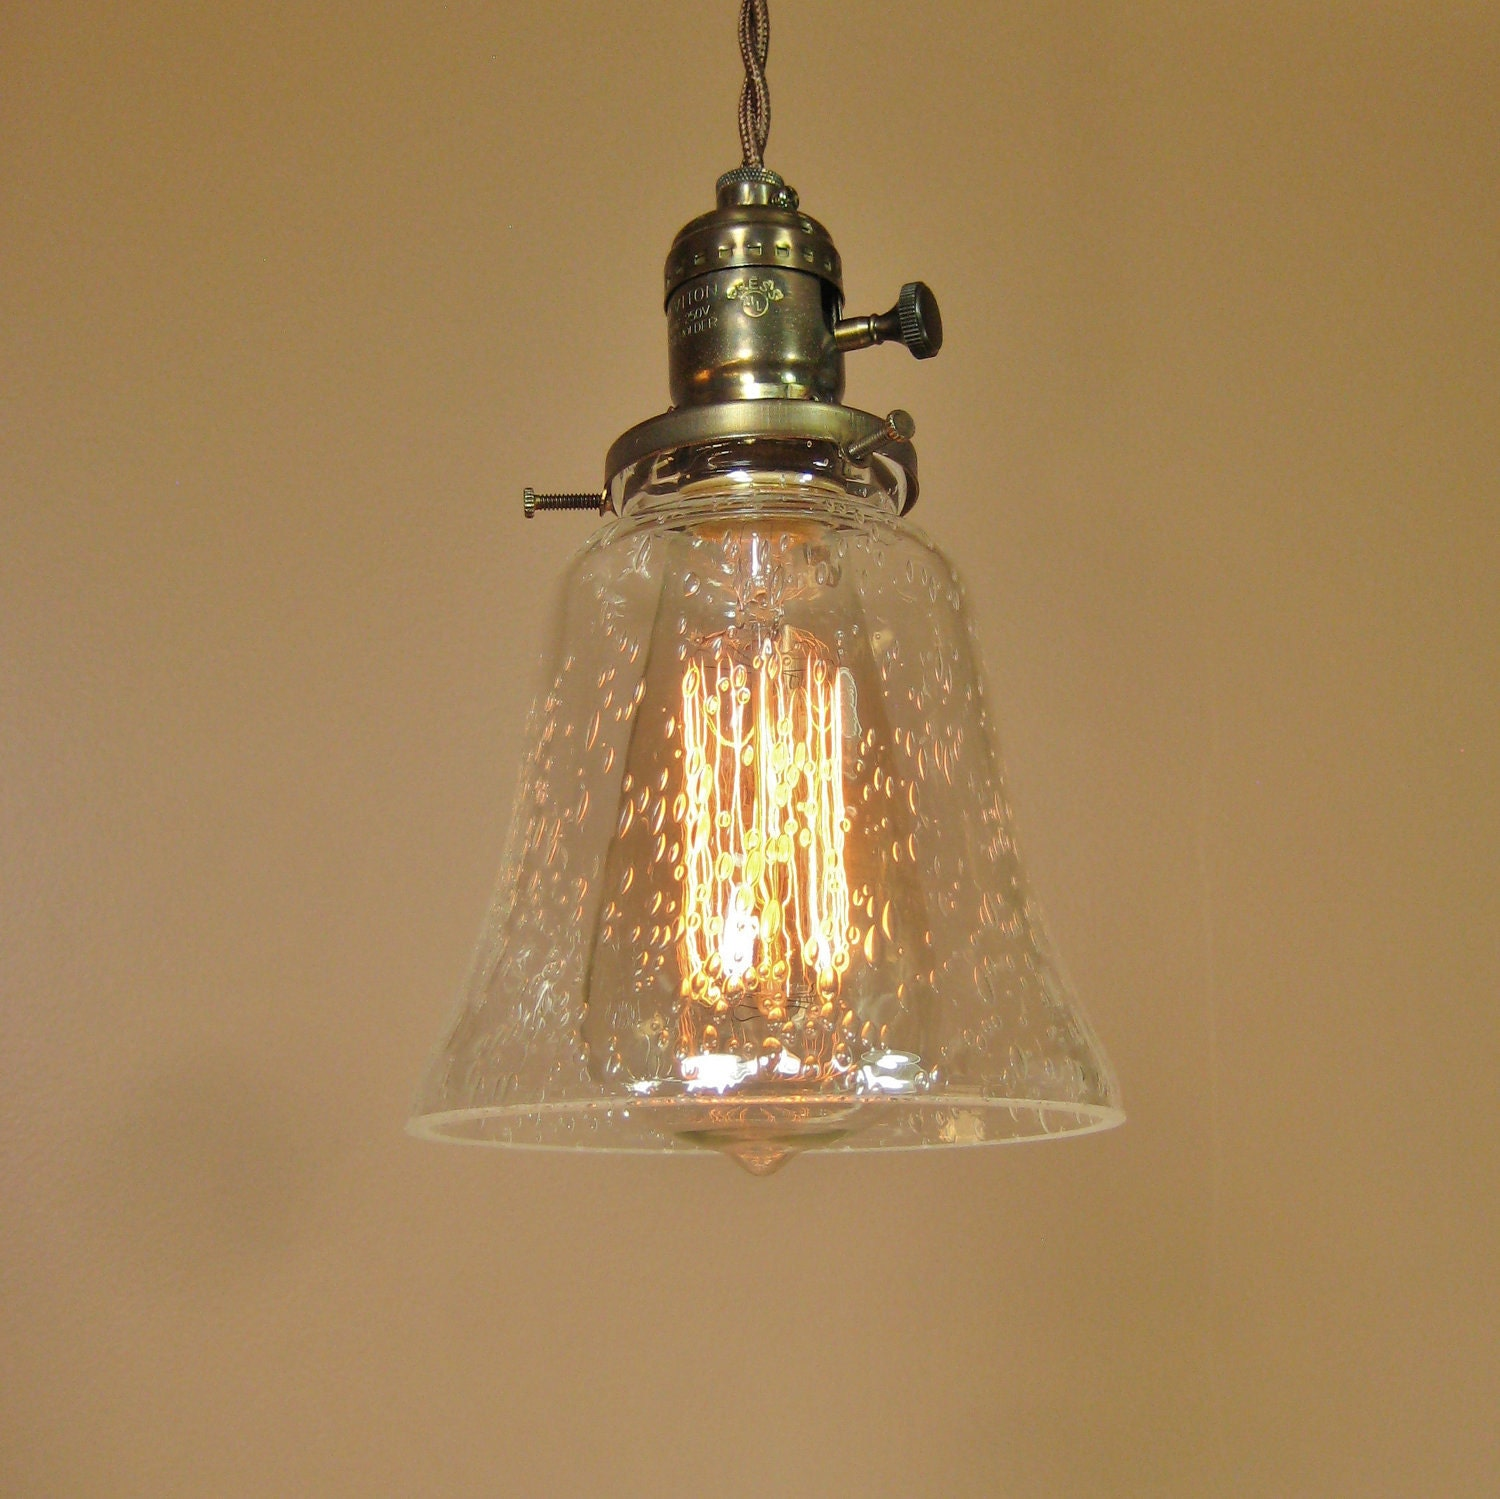 Mini Pendant Light Antique Vintage Reproduction Ceiling Light